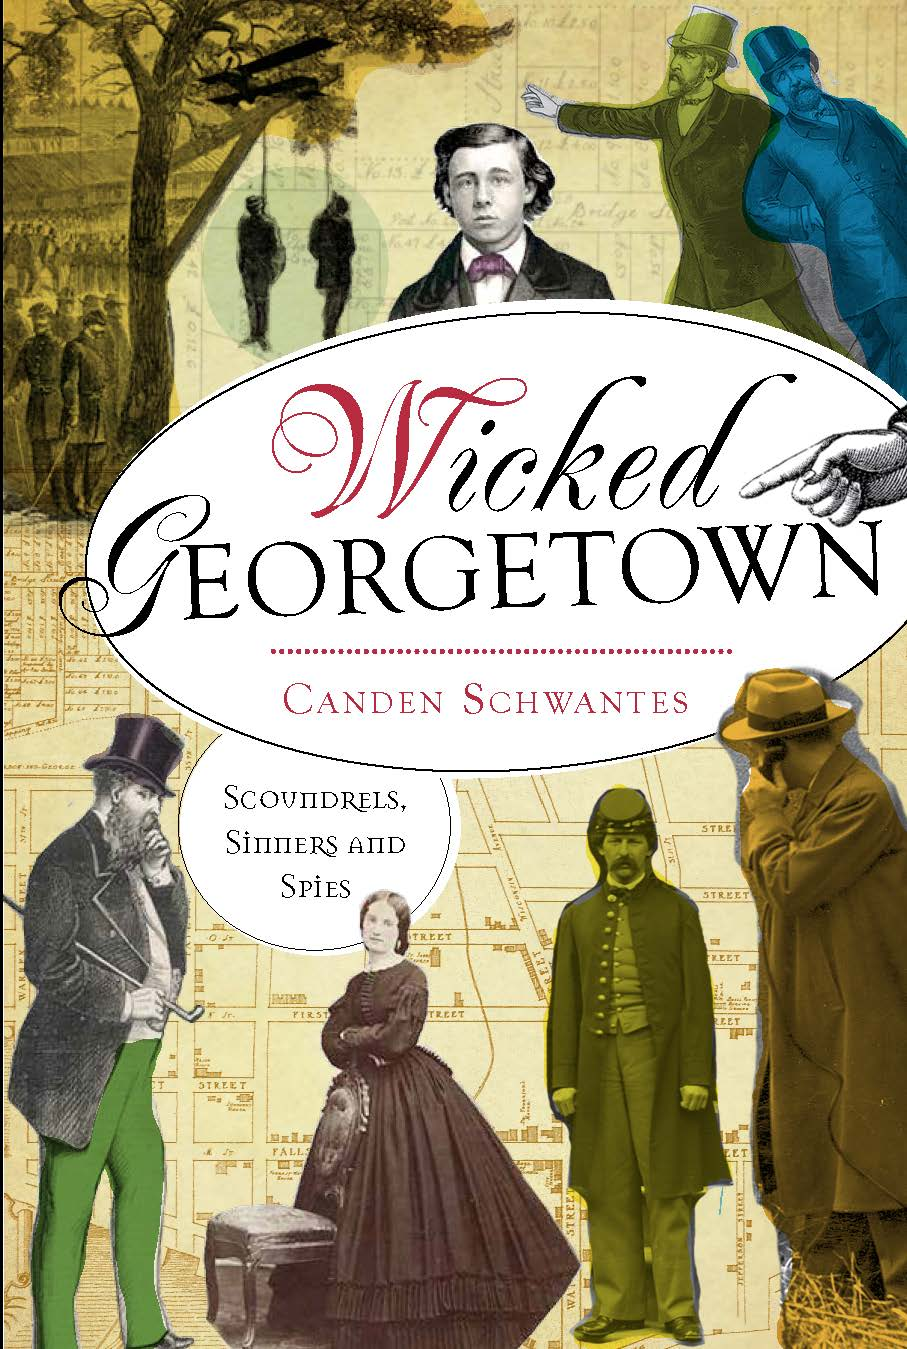 Wicked Georgetown, by Canden Schwantes